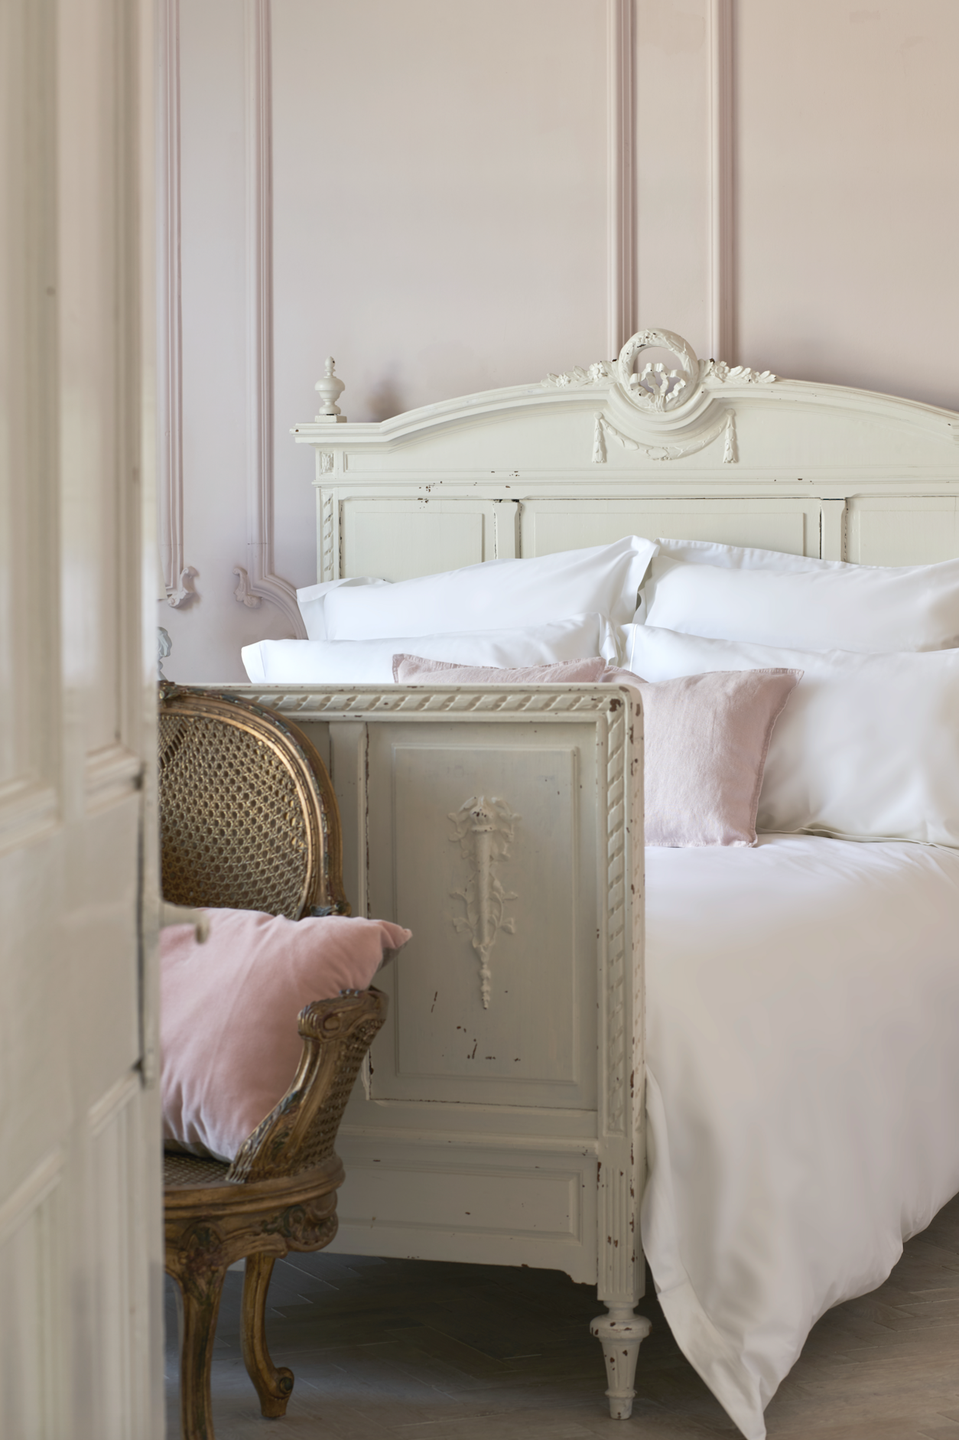 "<p><a class=""link rapid-noclick-resp"" href=""https://www.tielleloveluxury.co.uk/product/smooth-silky-600tc-bedlinen-set/"" rel=""nofollow noopener"" target=""_blank"" data-ylk=""slk:Shop Now"">Shop Now</a></p><p>If you want hotel-living round the clock, Tielle is where to shop. The official supplier to the likes of The Savoy, The Dorchester and The Lanesborough, Tielle offers a wide range of fabrics and sizes to choose from. </p><p>Smooth and silky 600tc bedlinen set, from £180, <a href=""https://www.tielleloveluxury.co.uk/product/smooth-silky-600tc-bedlinen-set/"" rel=""nofollow noopener"" target=""_blank"" data-ylk=""slk:Tielle"" class=""link rapid-noclick-resp"">Tielle</a></p>"